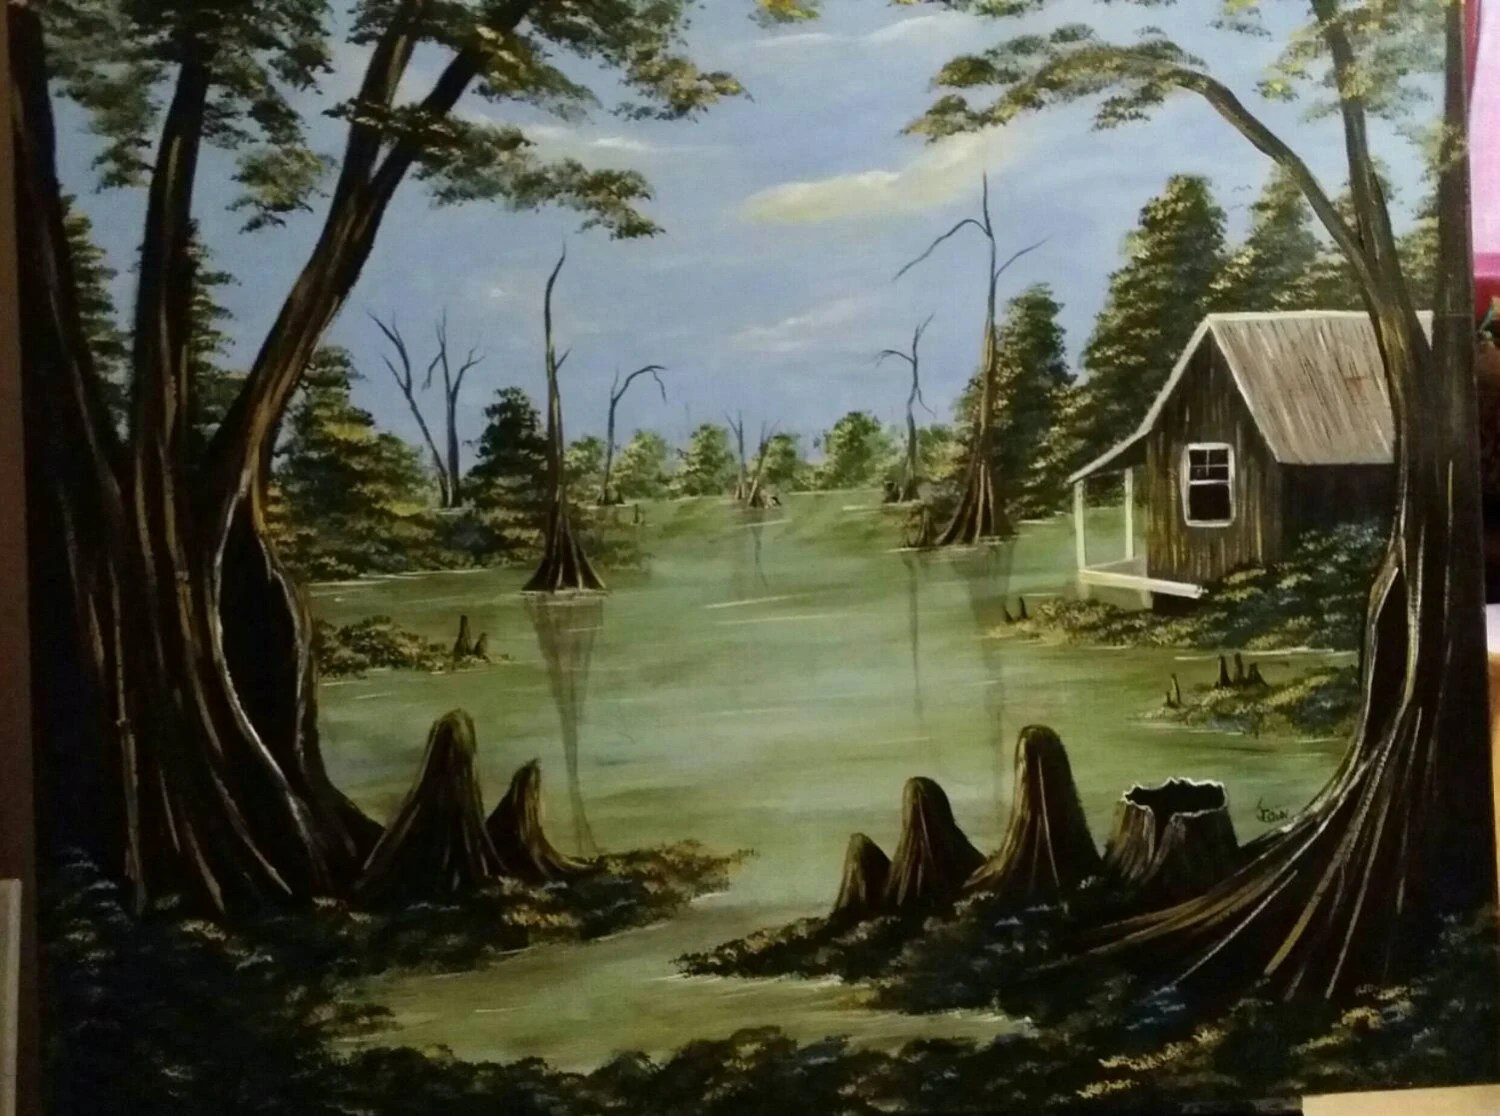 Painting On Canvas Featuring A Louisiana Swamp Scene